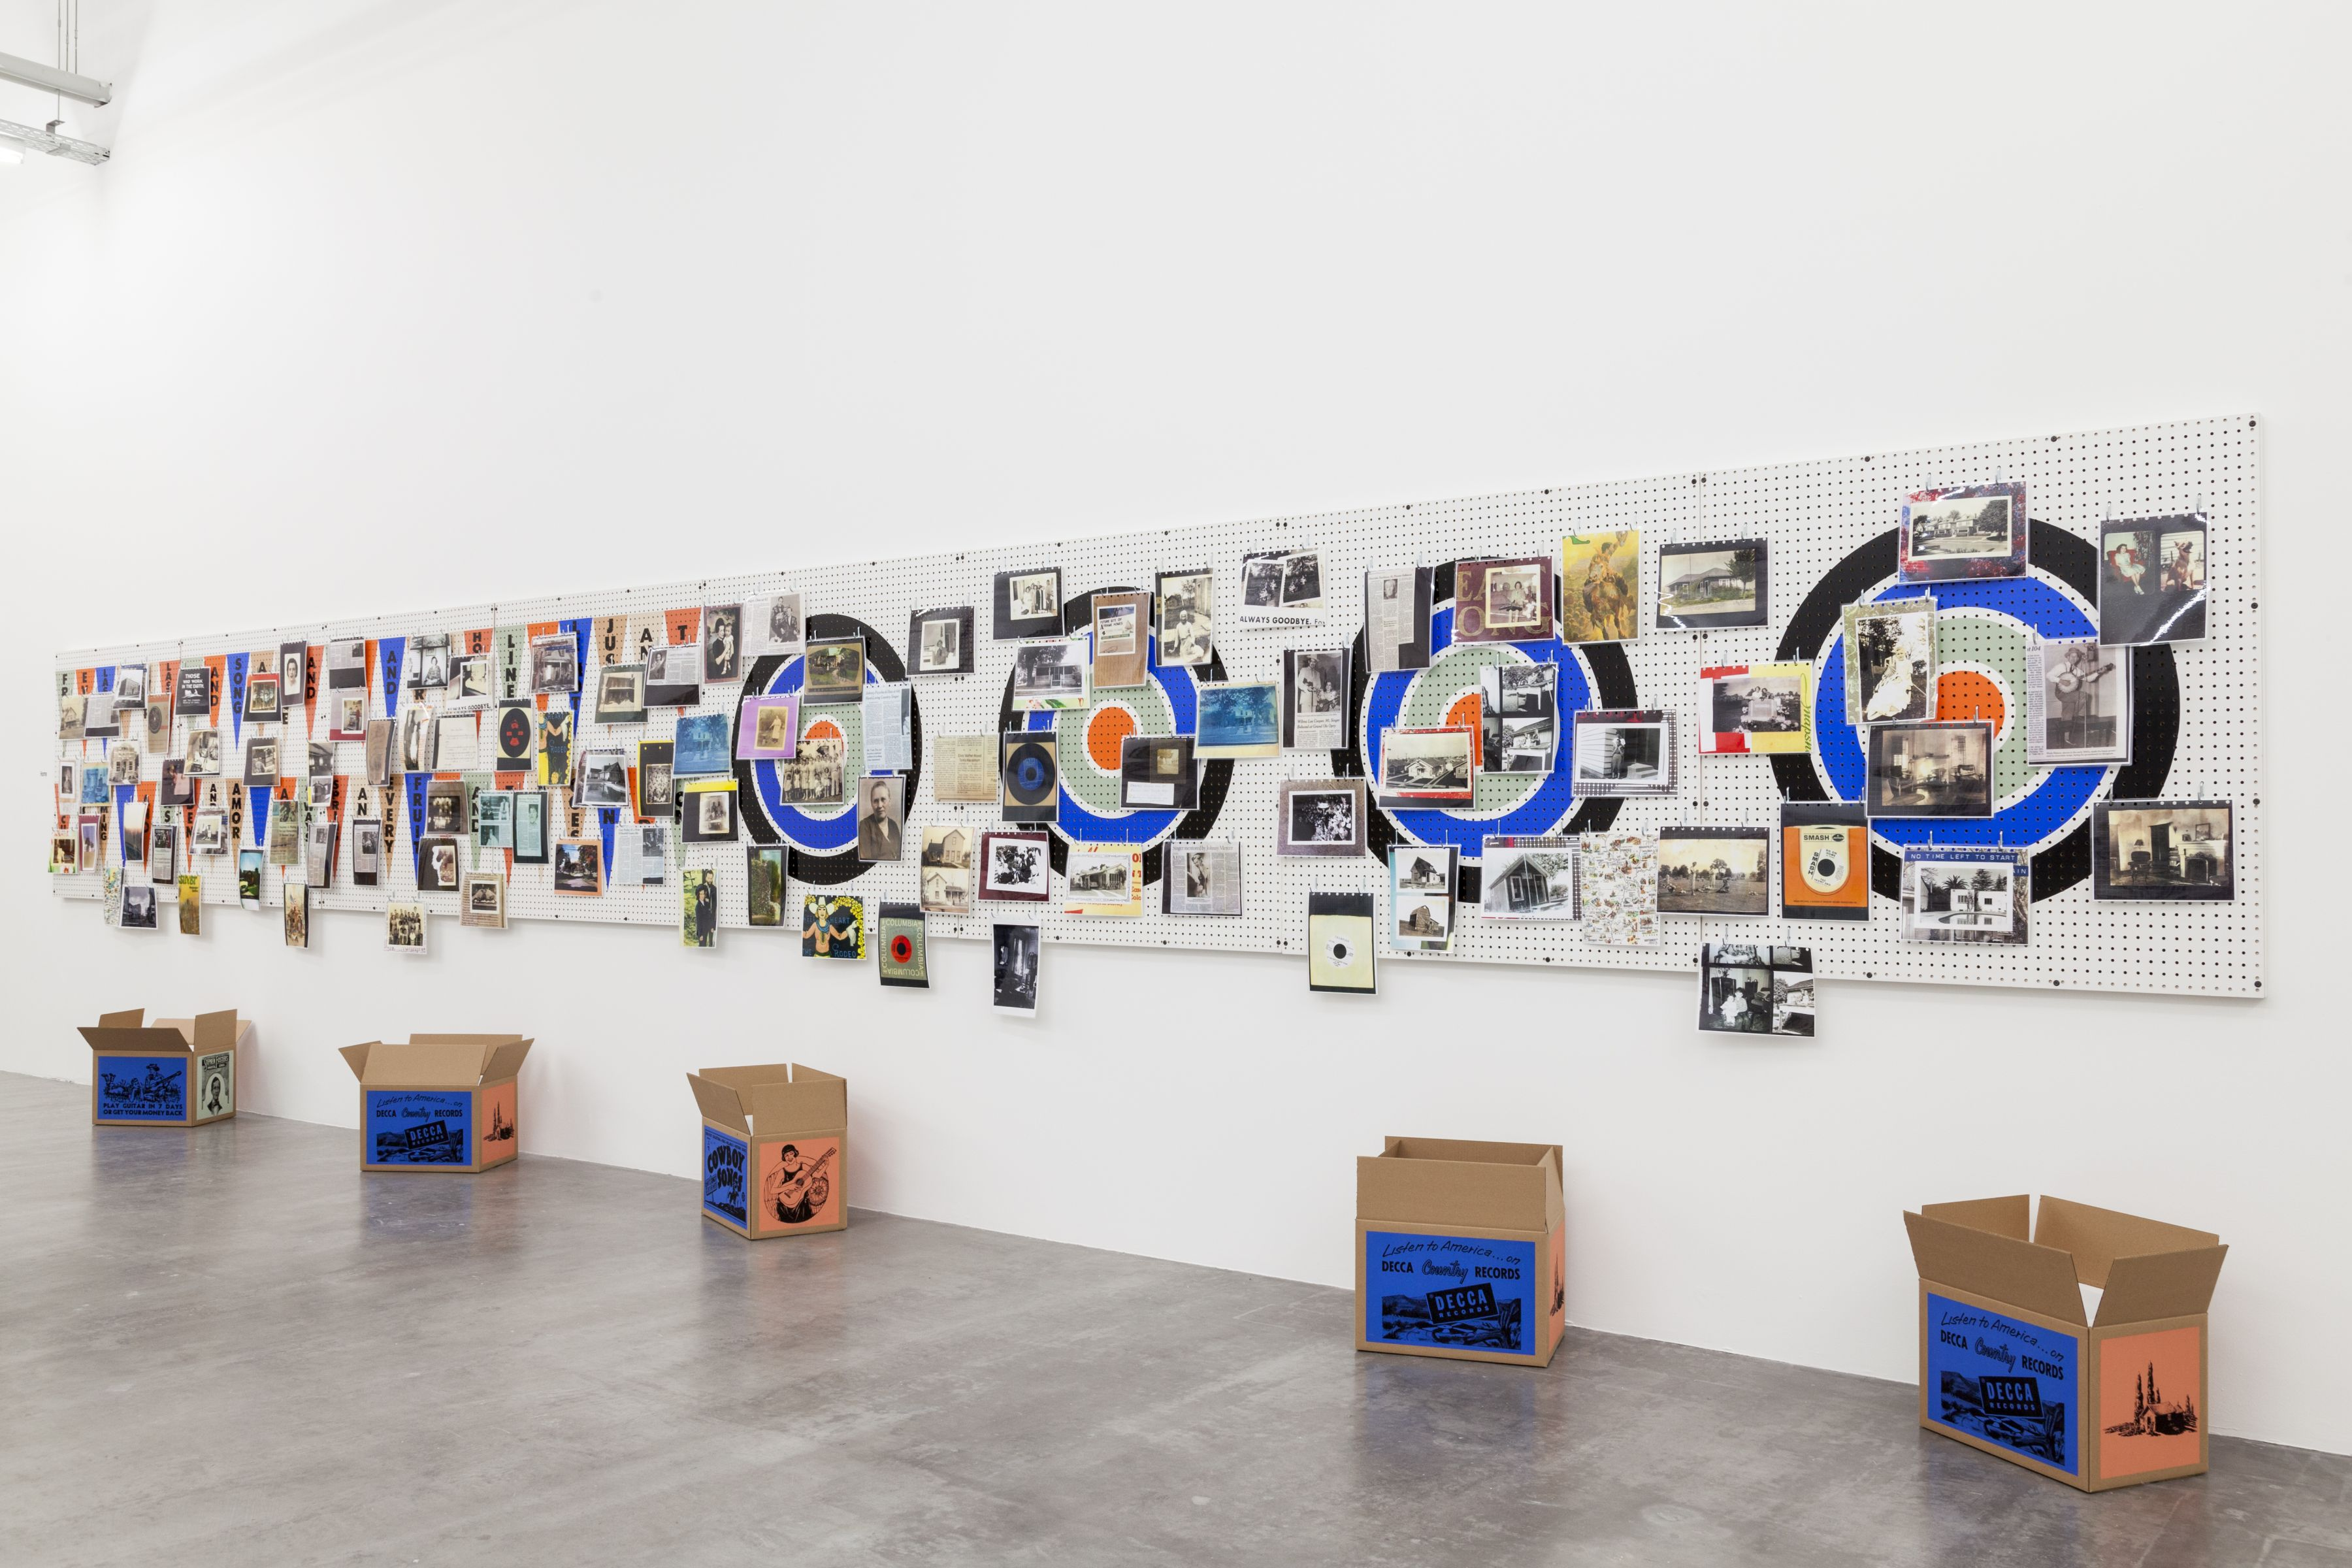 Installation View, No Time Left to Start Again and Again  WIELS, Contemporary Art Center, Brussels, Belgium, 2014